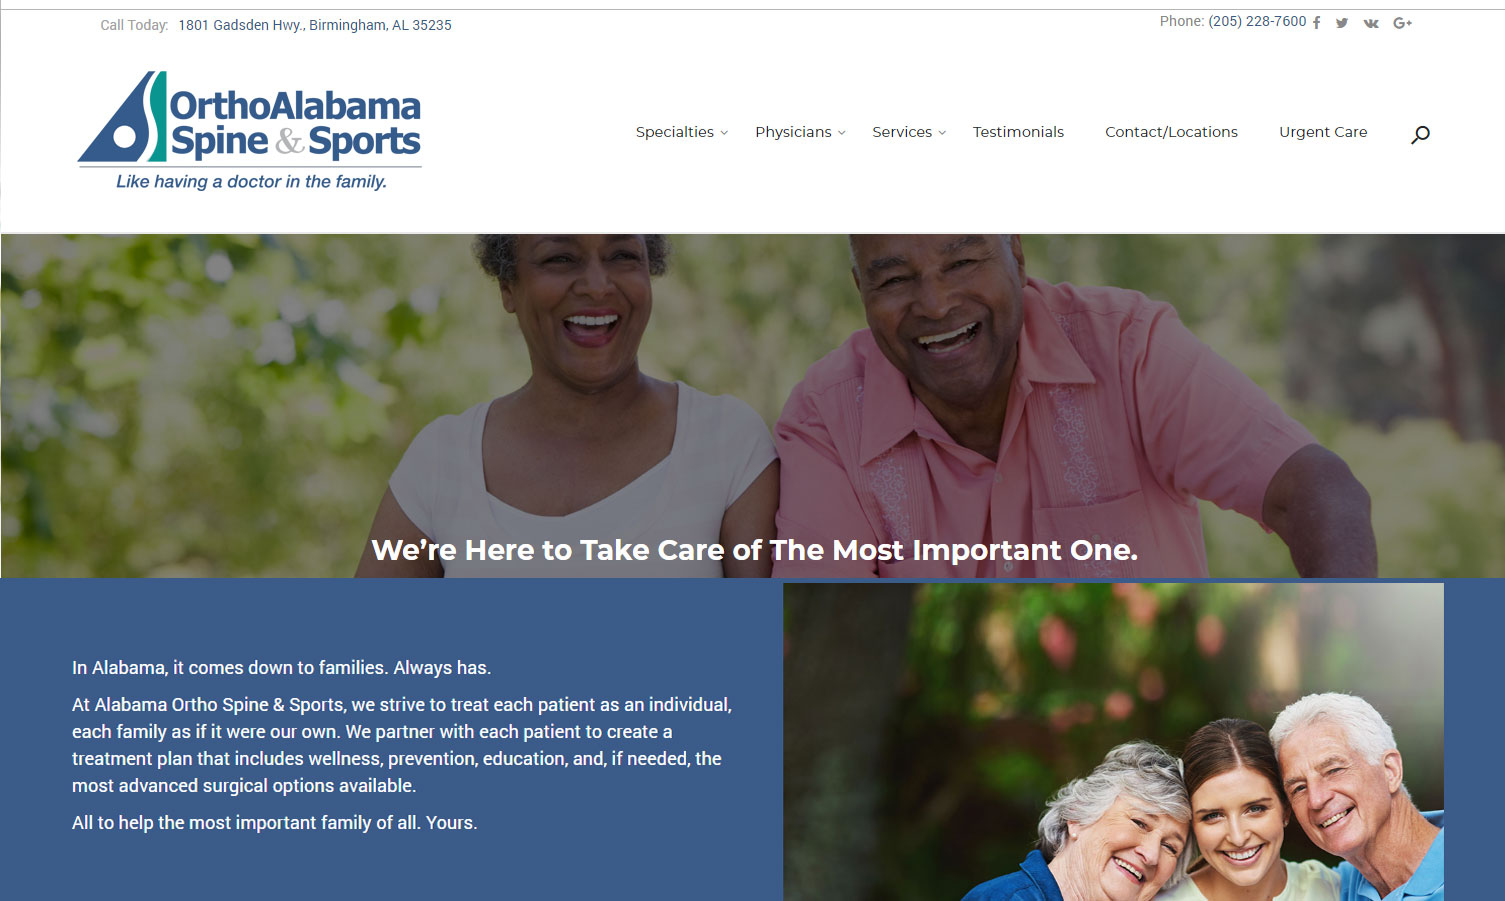 Homepage of OrthoAlabama Spine & Sport